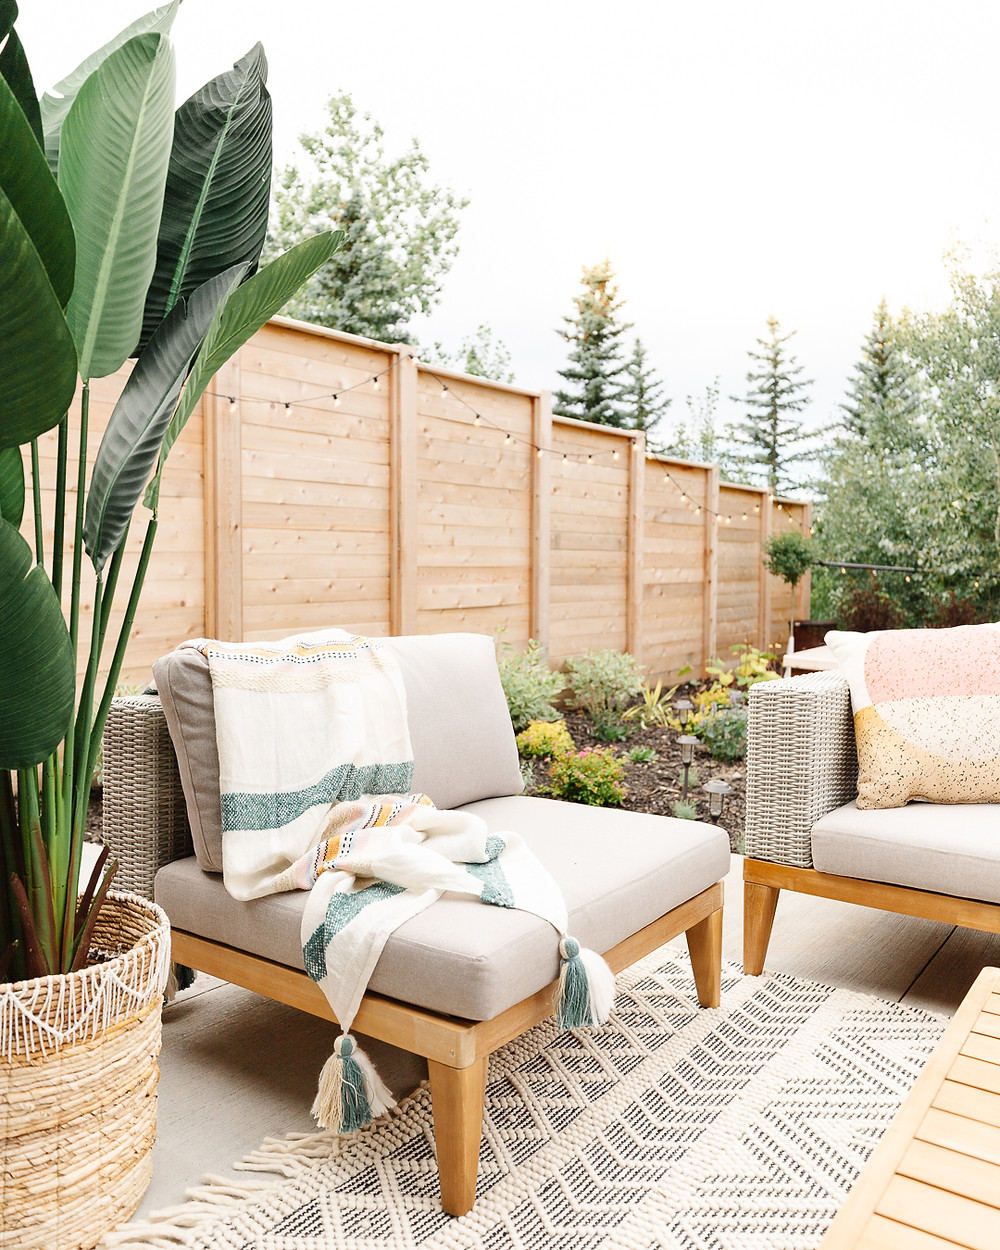 Wicker sofa with wood accents and beige cushions black and white area rug chair with wood accent and striped throw blanket wood accent table with succulent pots wicker basket with blankets patterned oversized pillow on rug potted plant wood fence landscaping perennial flowerbed backyard concrete patio space